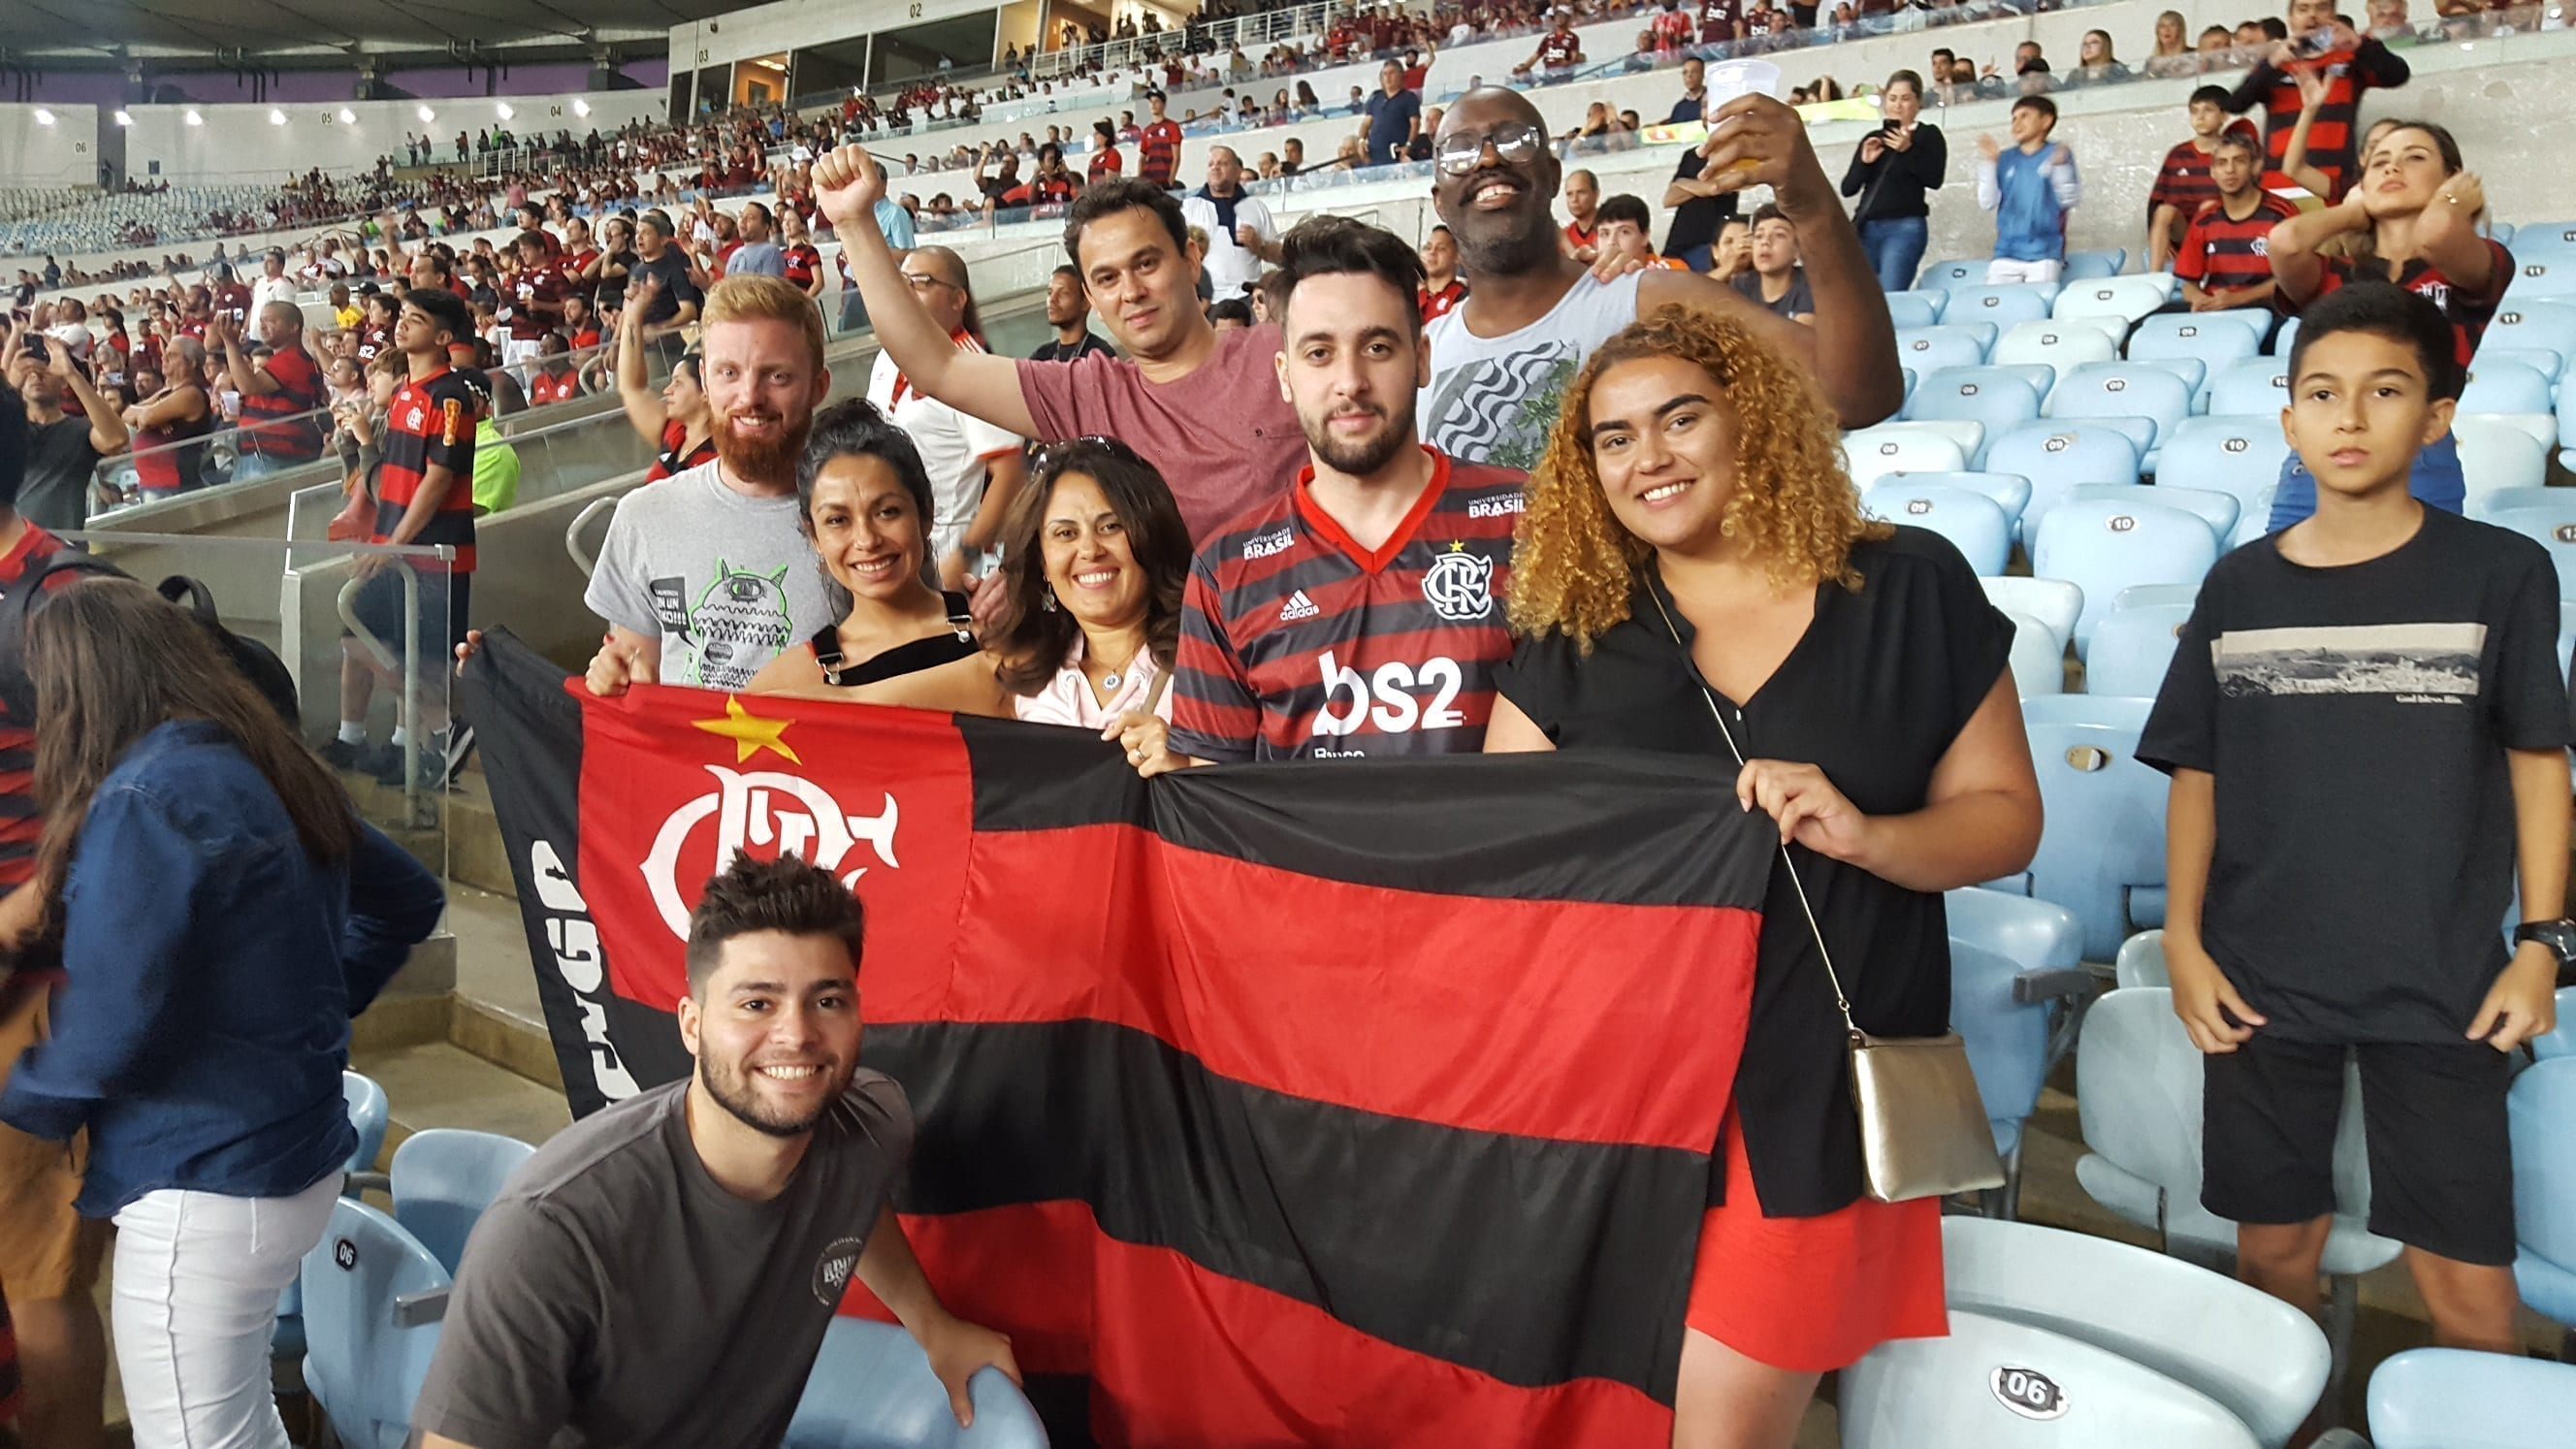 Long Awaited Victory of Flamengo over Botafogo at the Maracanã Stadium.